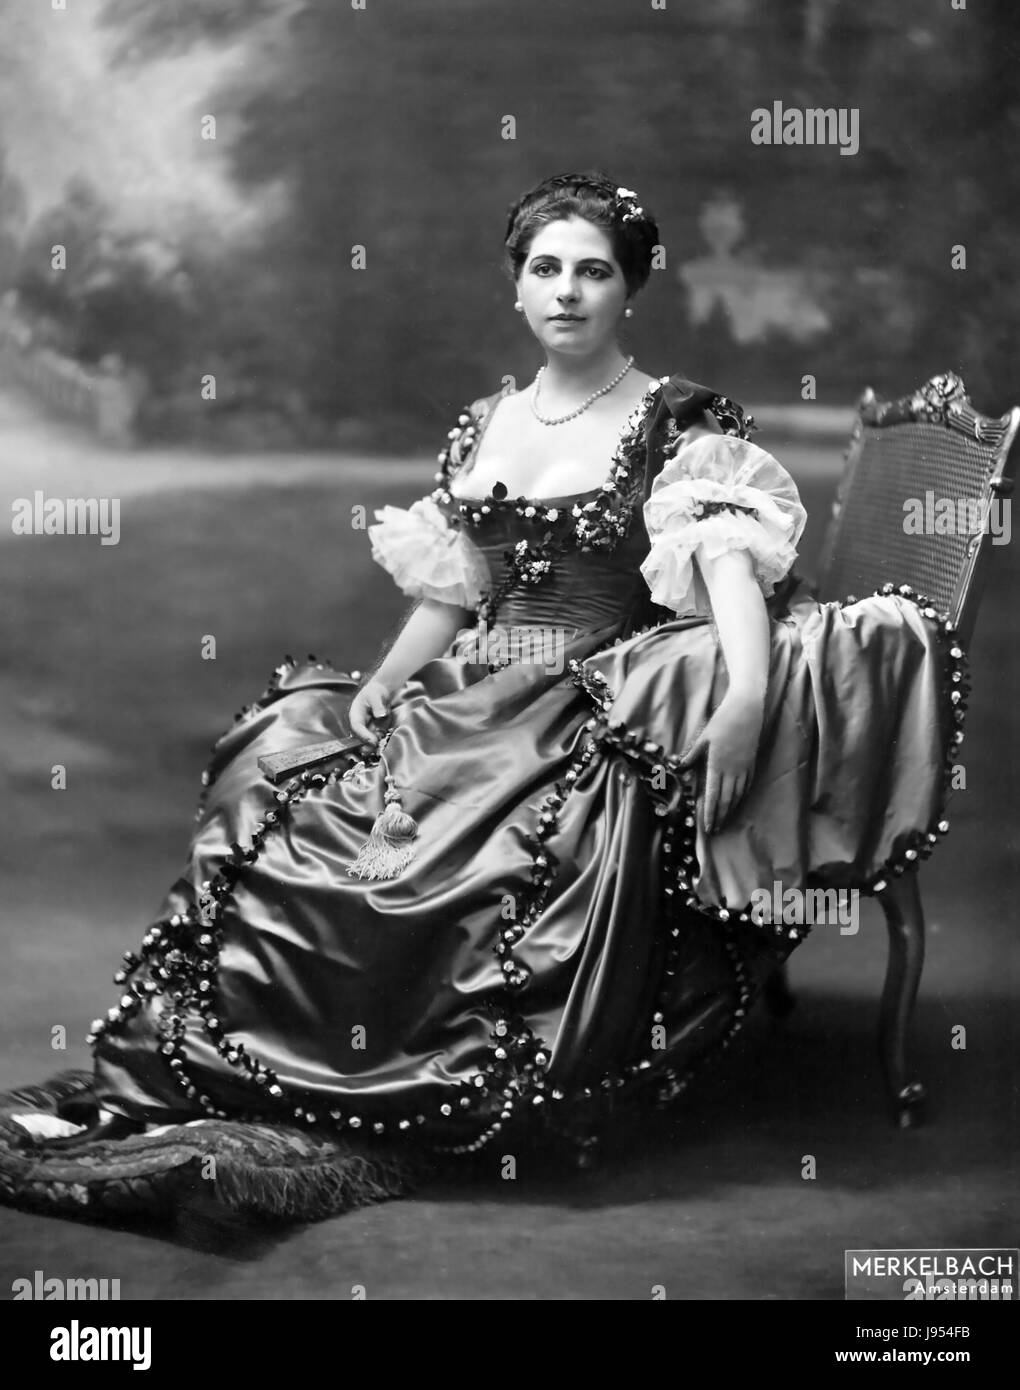 MATA HARI (1876-1917) Dutch dancer and German spy photographed in Amsterdam in 1915 - Stock Image